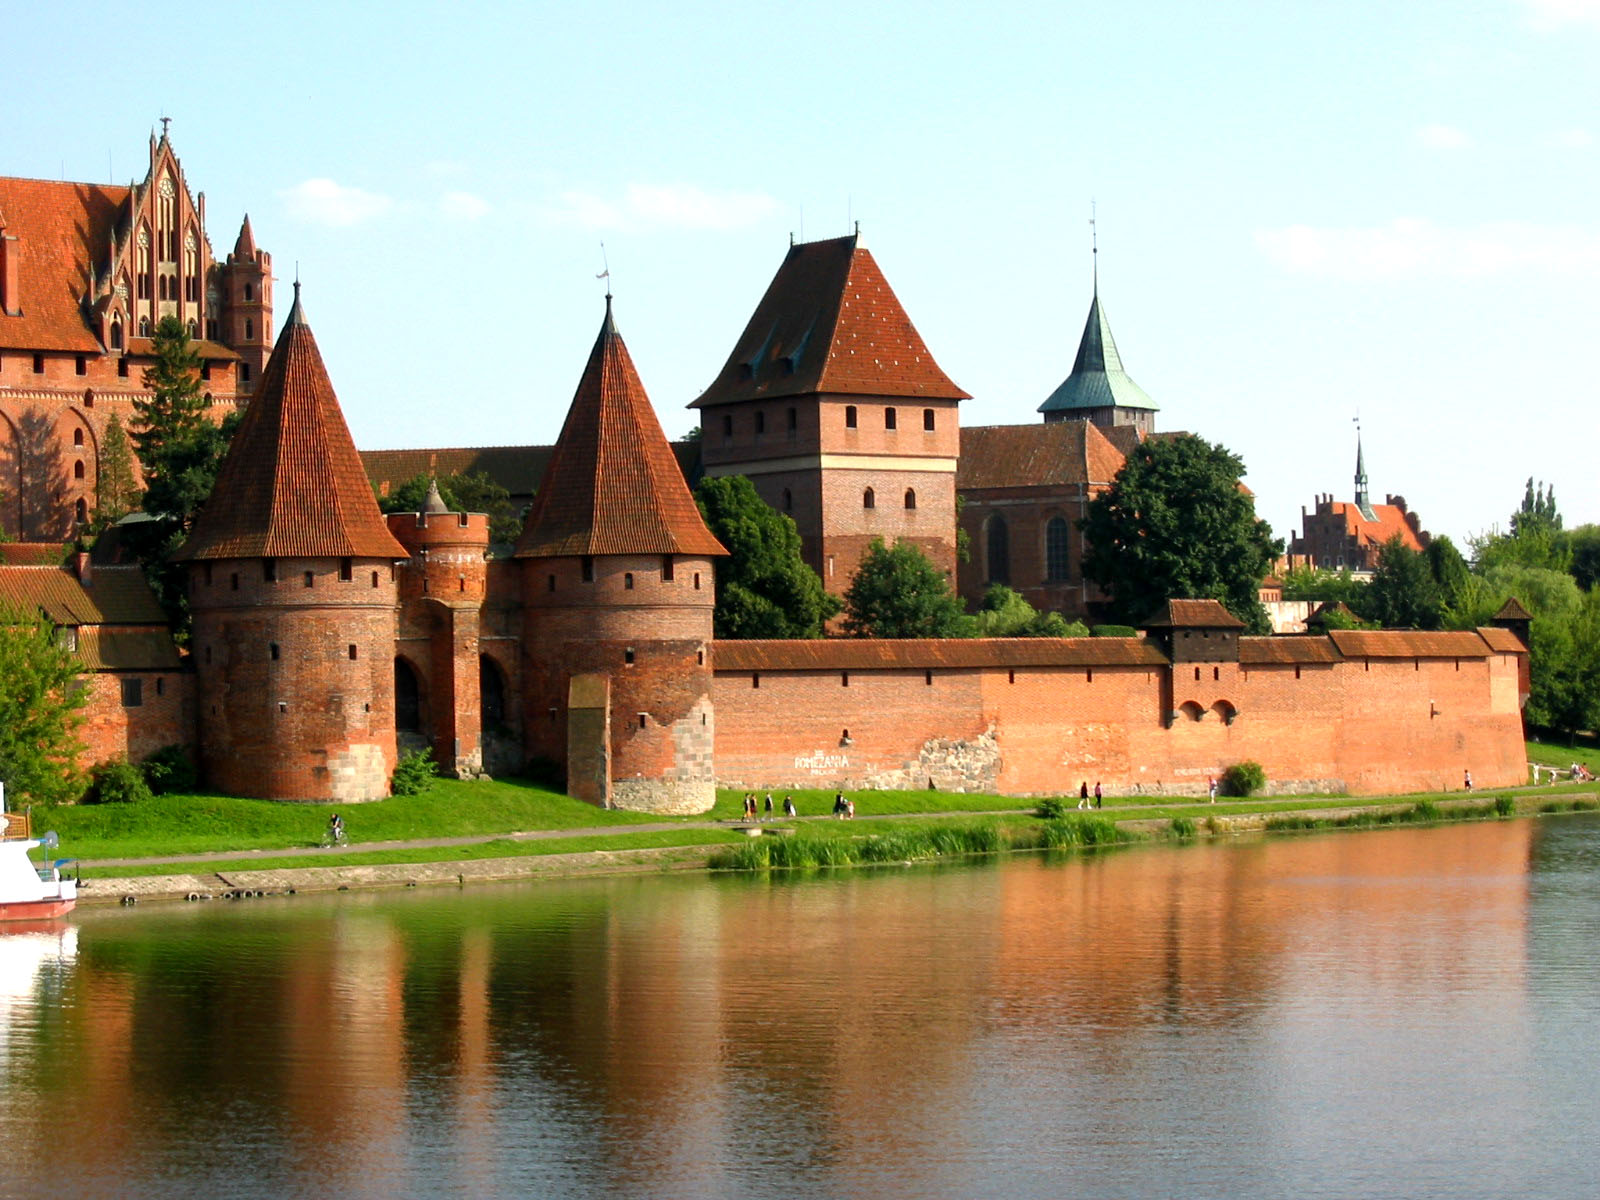 http://citypictures.org/data/media/256/Malbork_Castle_of_Teutonic_Knights_Pomerania_1.jpg